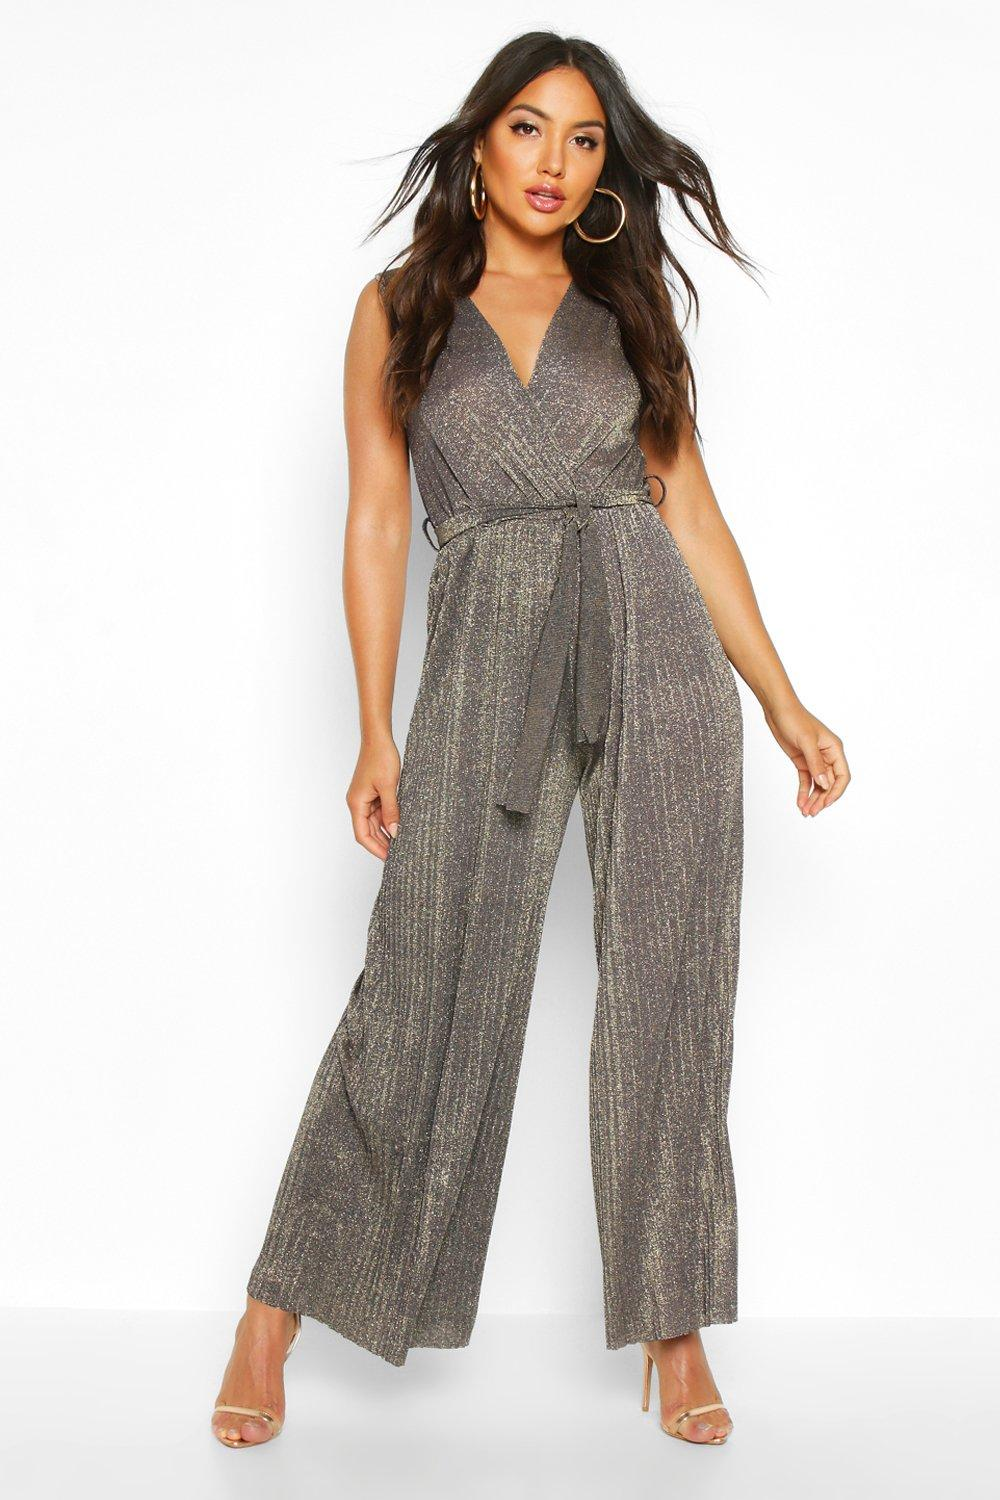 70s Jumpsuit | Disco Jumpsuits – Sequin, Striped, Gold, White, Black Womens Metallic Glitter Wrap Tie Waist Pleated Jumpsuit - navy - SM $46.00 AT vintagedancer.com